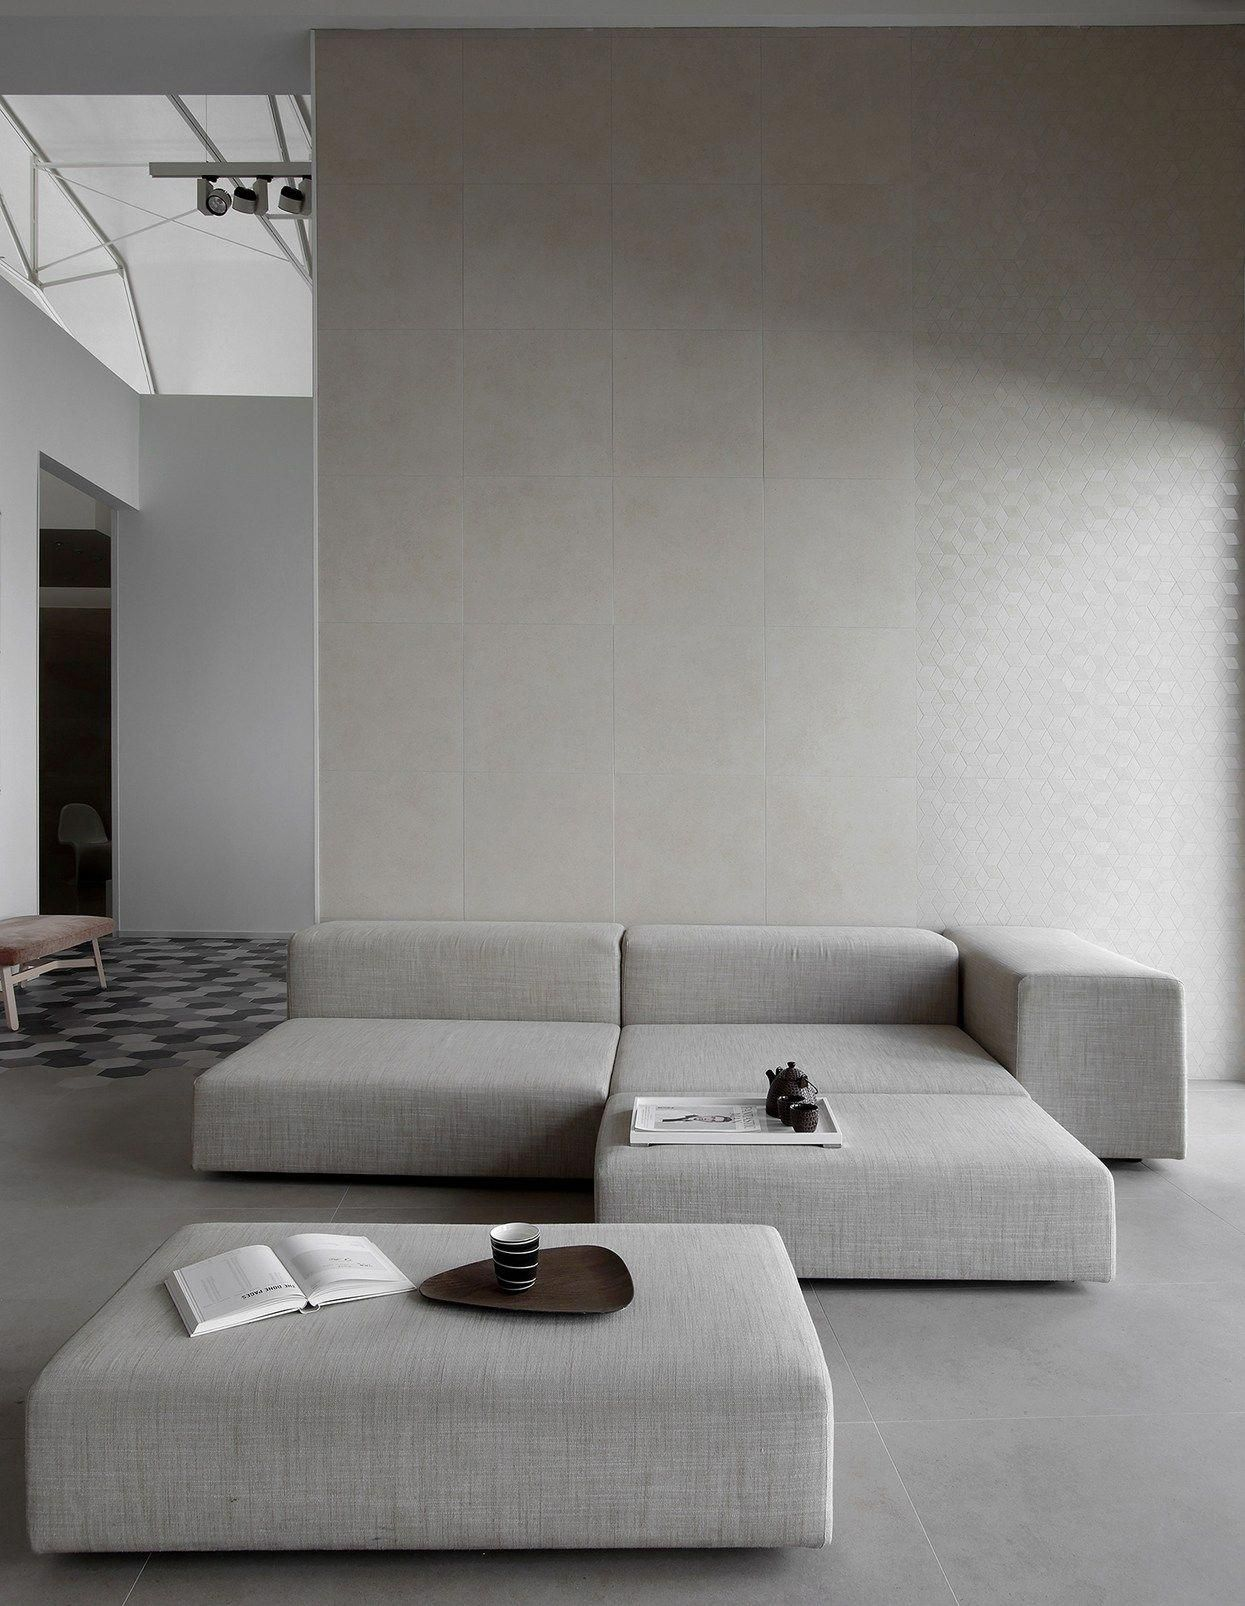 Living Divani Extra Wall.Extrawall Seating System By Piero Lissoni For Living Divani